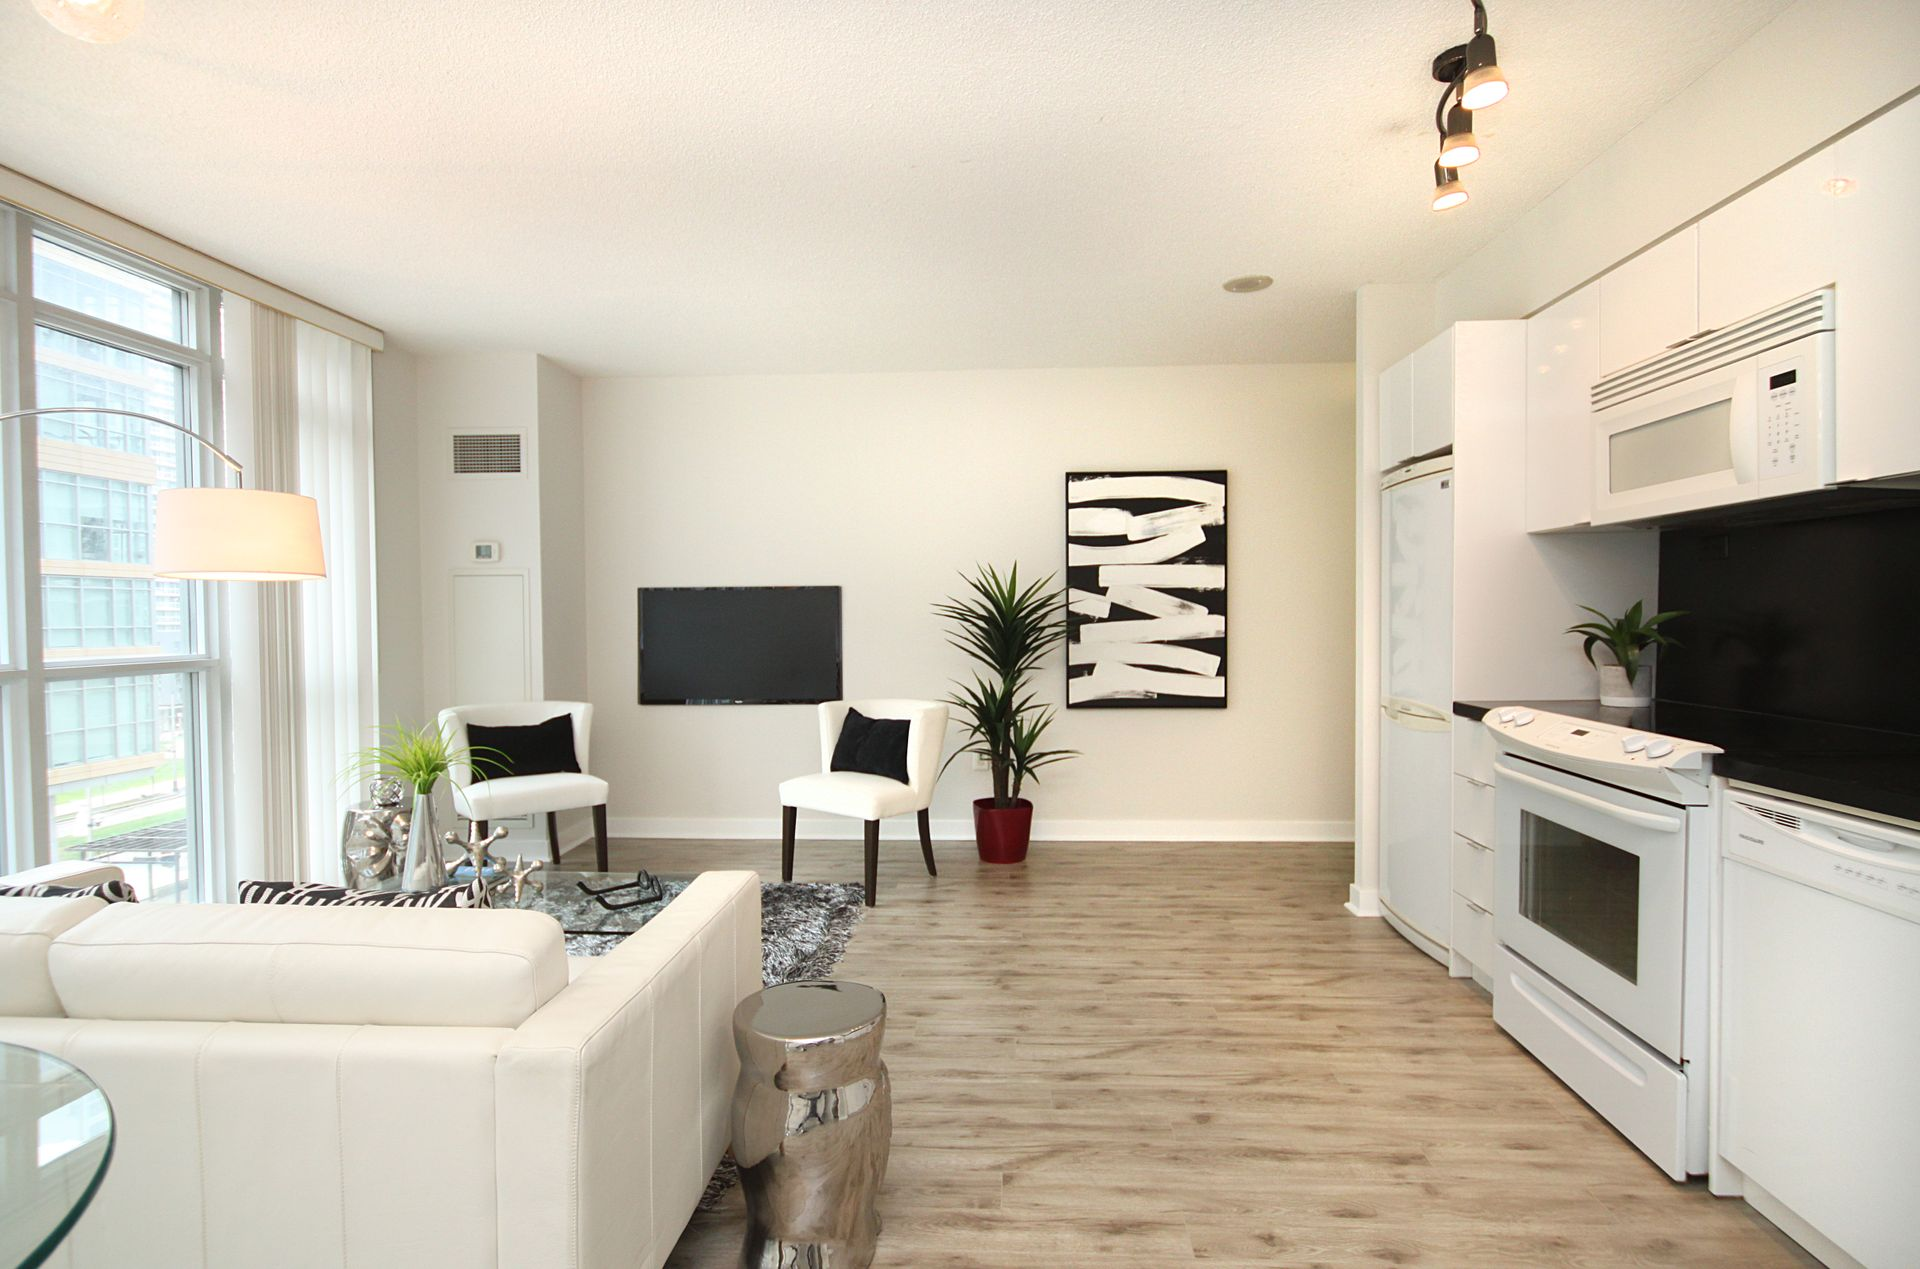 Living Room & Kitchen at 632 - 15 Iceboat Terrace, Waterfront Communities C1, Toronto